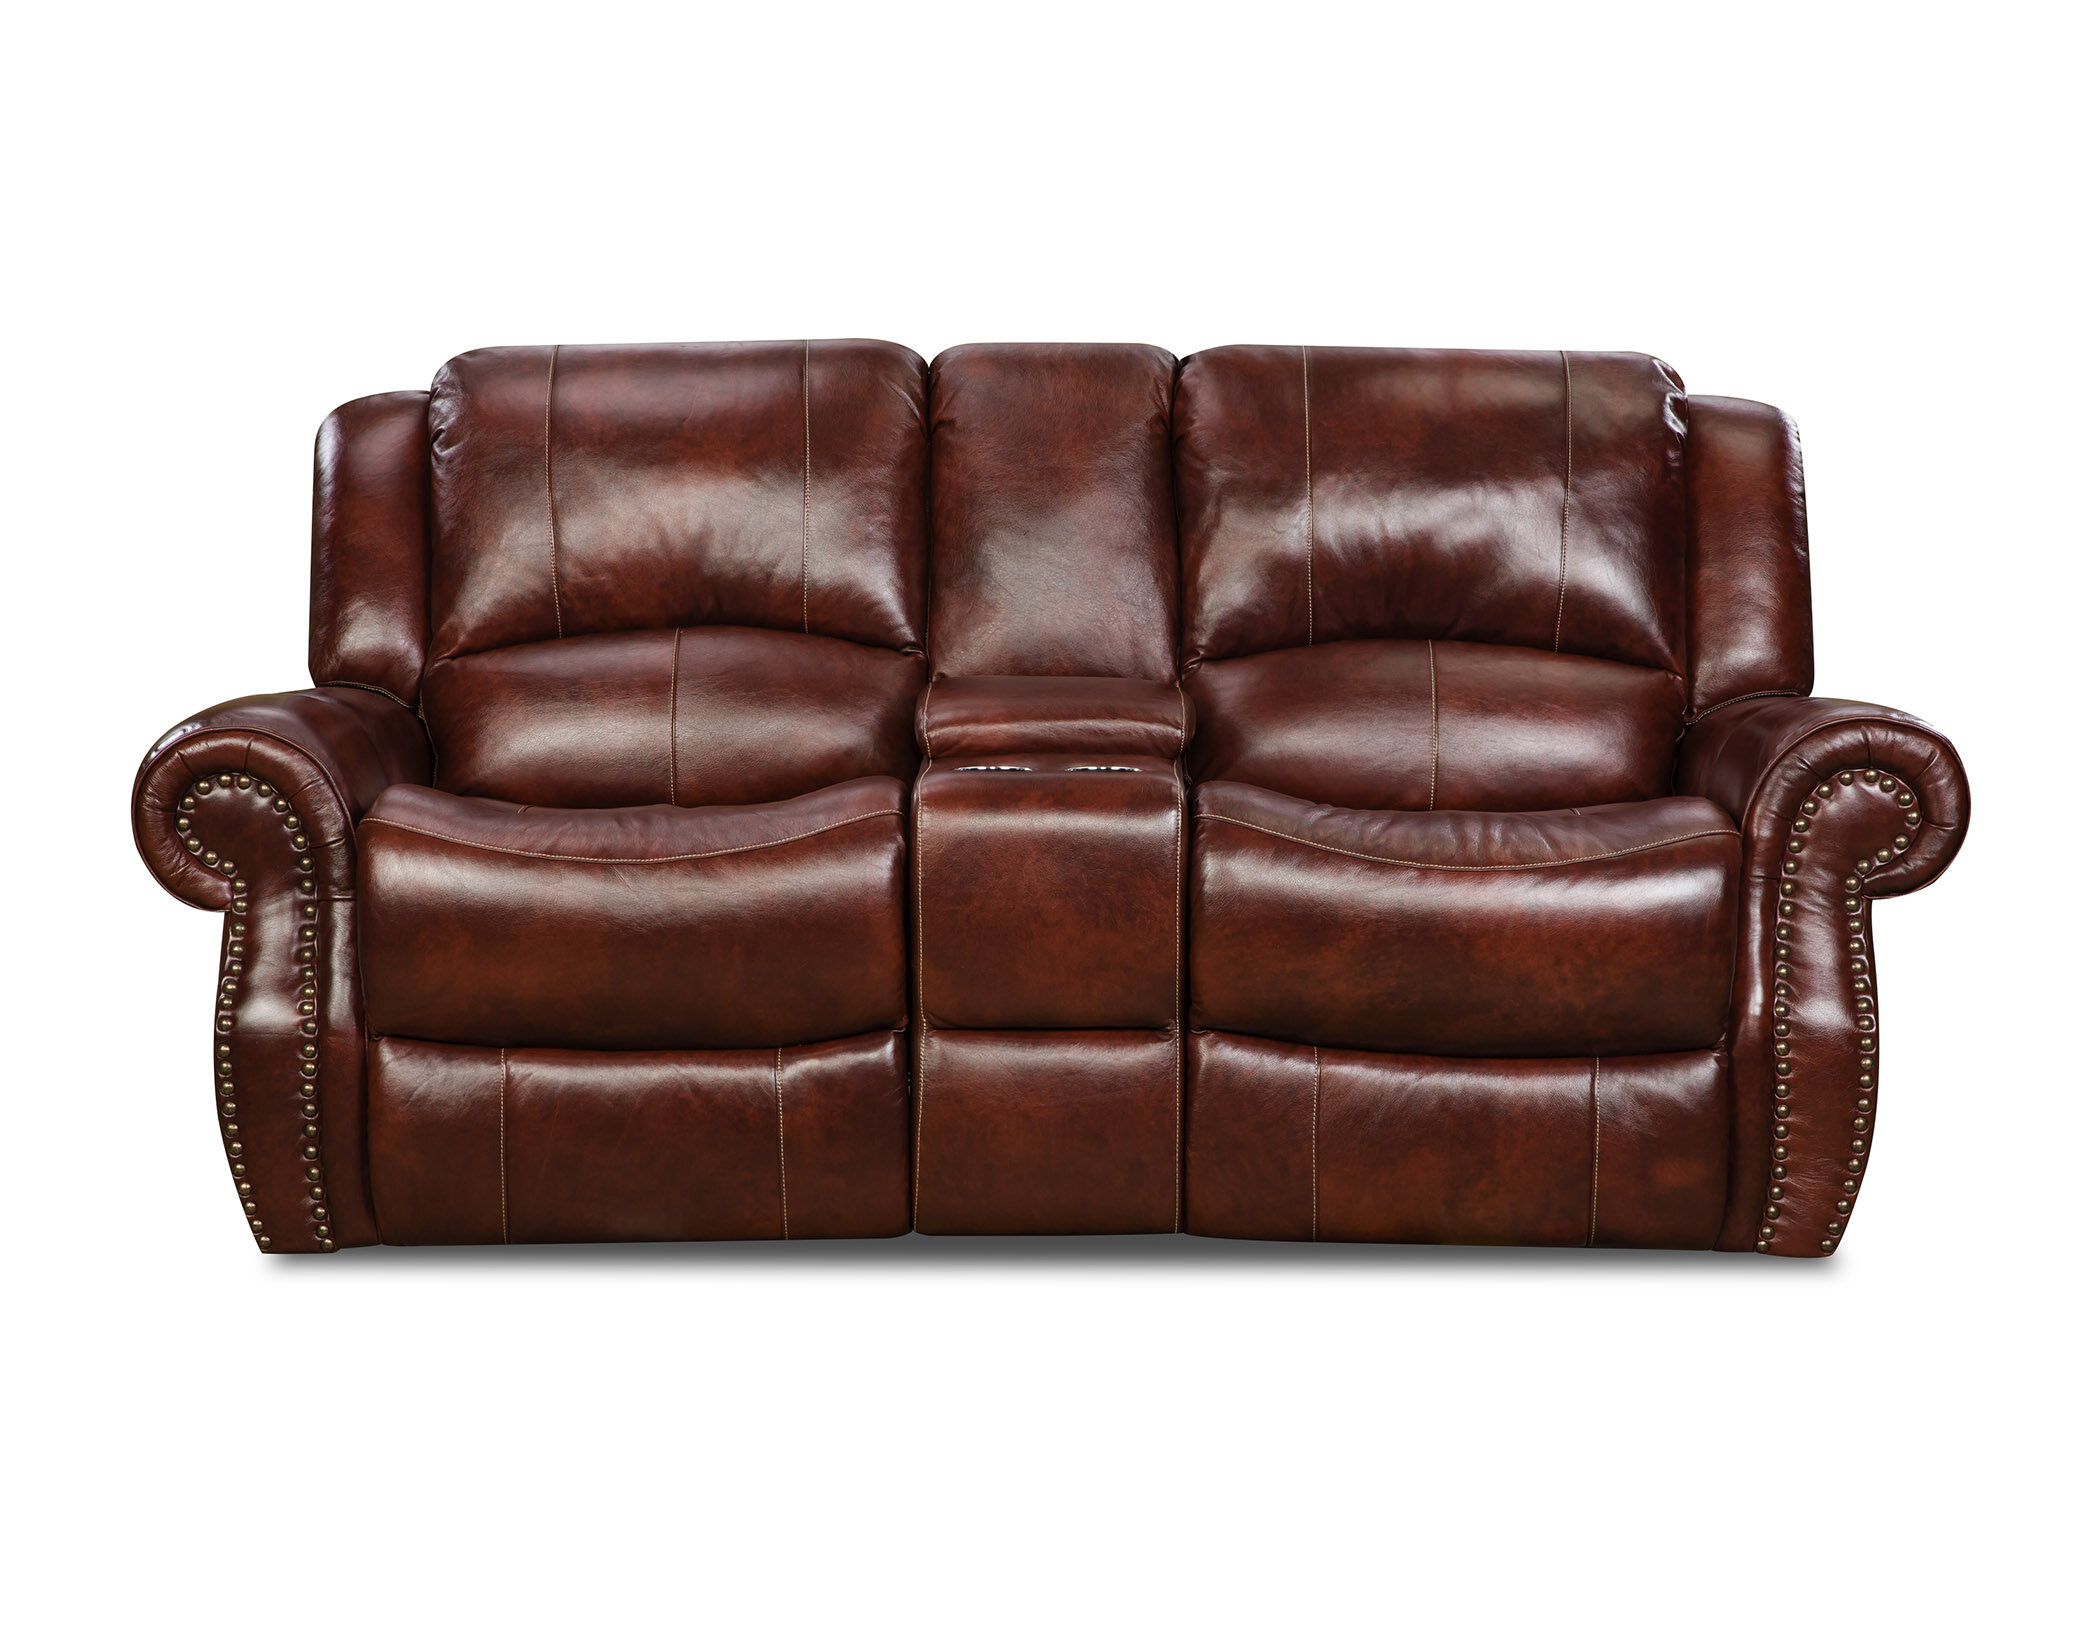 Amazing Hein Leather Reclining Loveseat Ncnpc Chair Design For Home Ncnpcorg